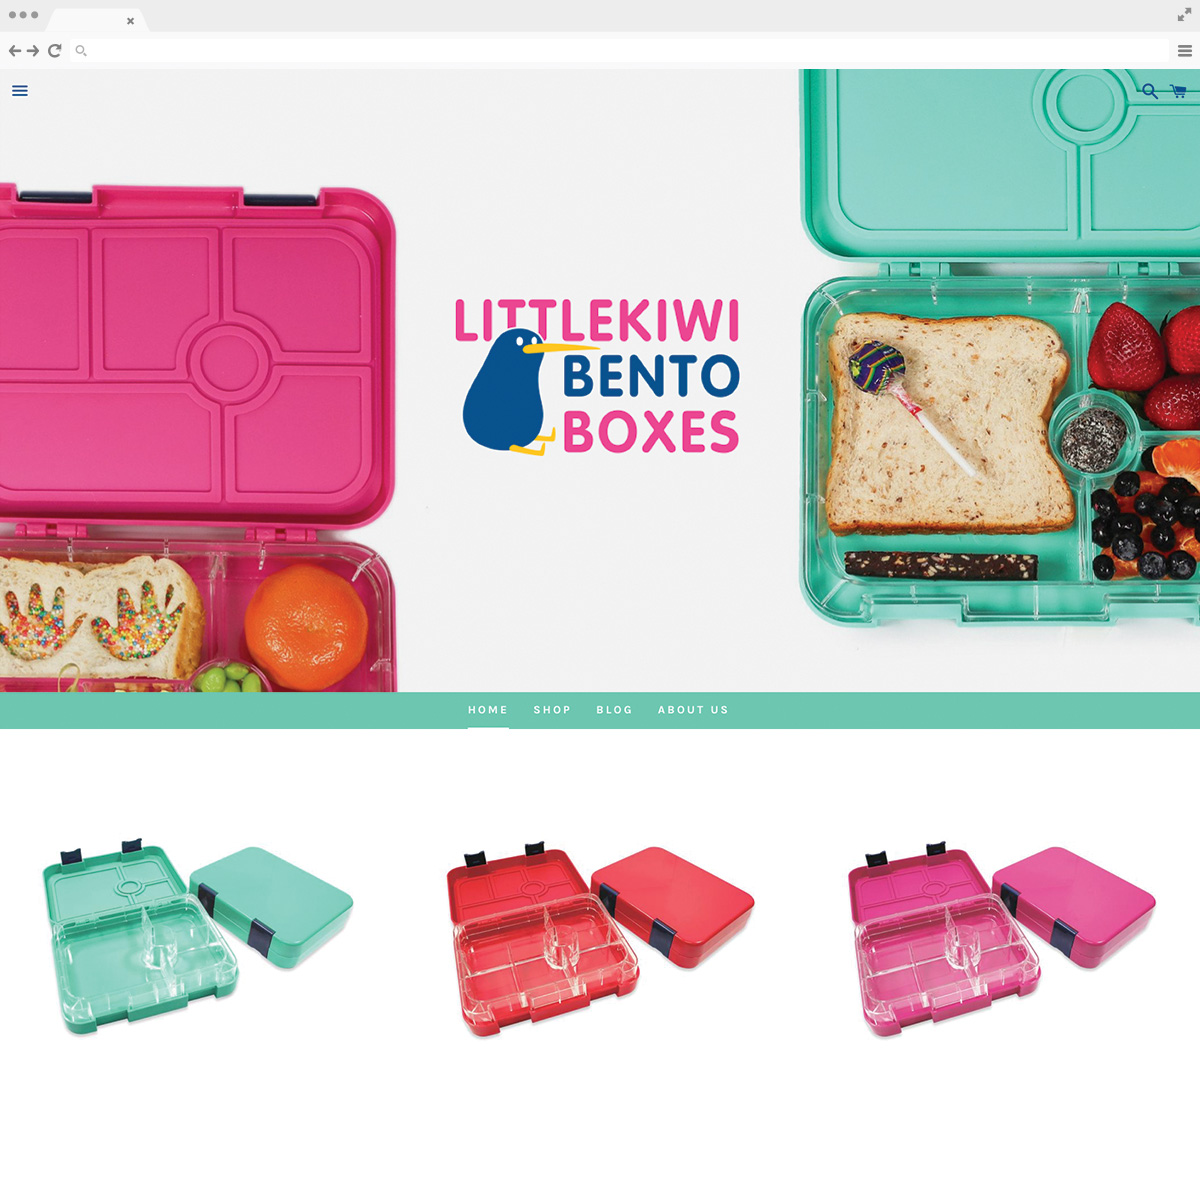 LittleKiwi Bento Boxes